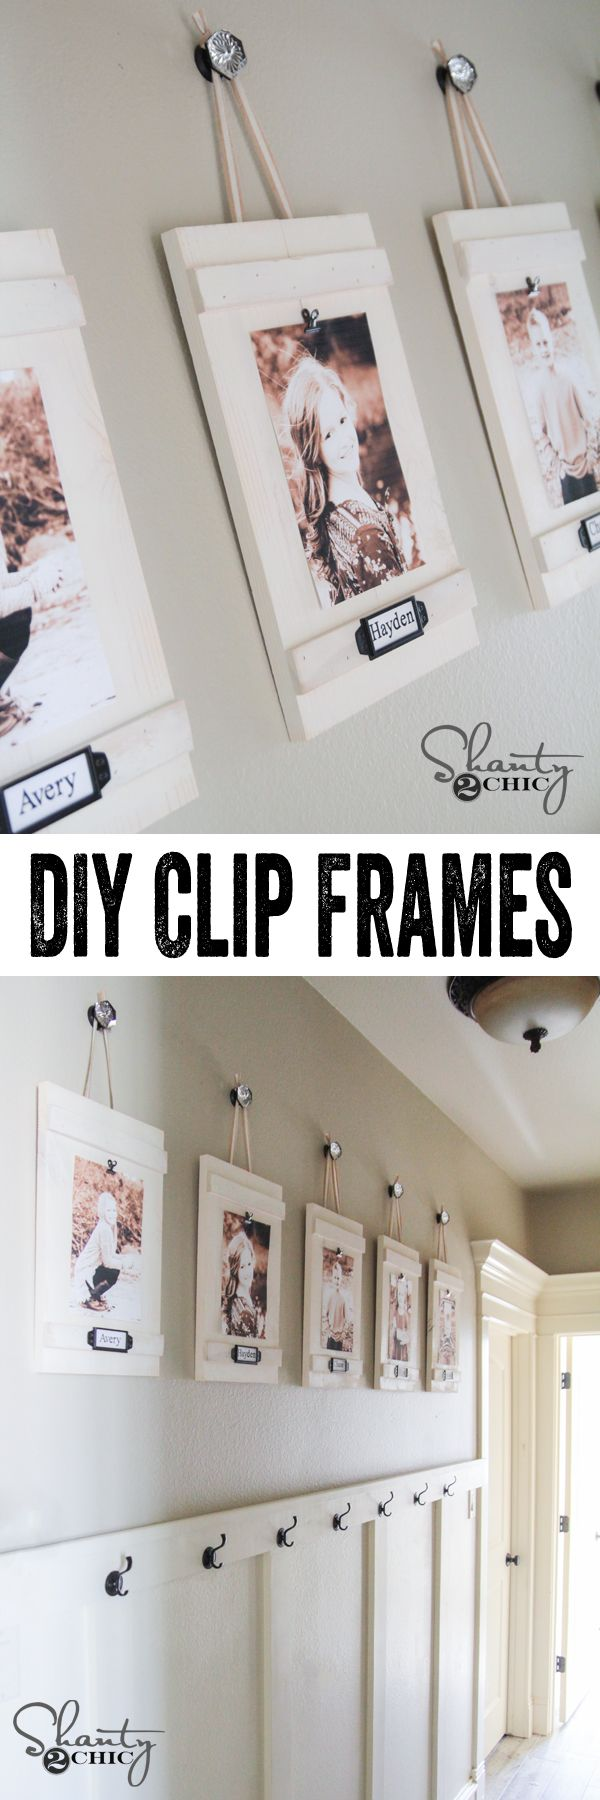 395 best unique framing ideas images on pinterest home ideas diy hanging frames with labels jeuxipadfo Image collections